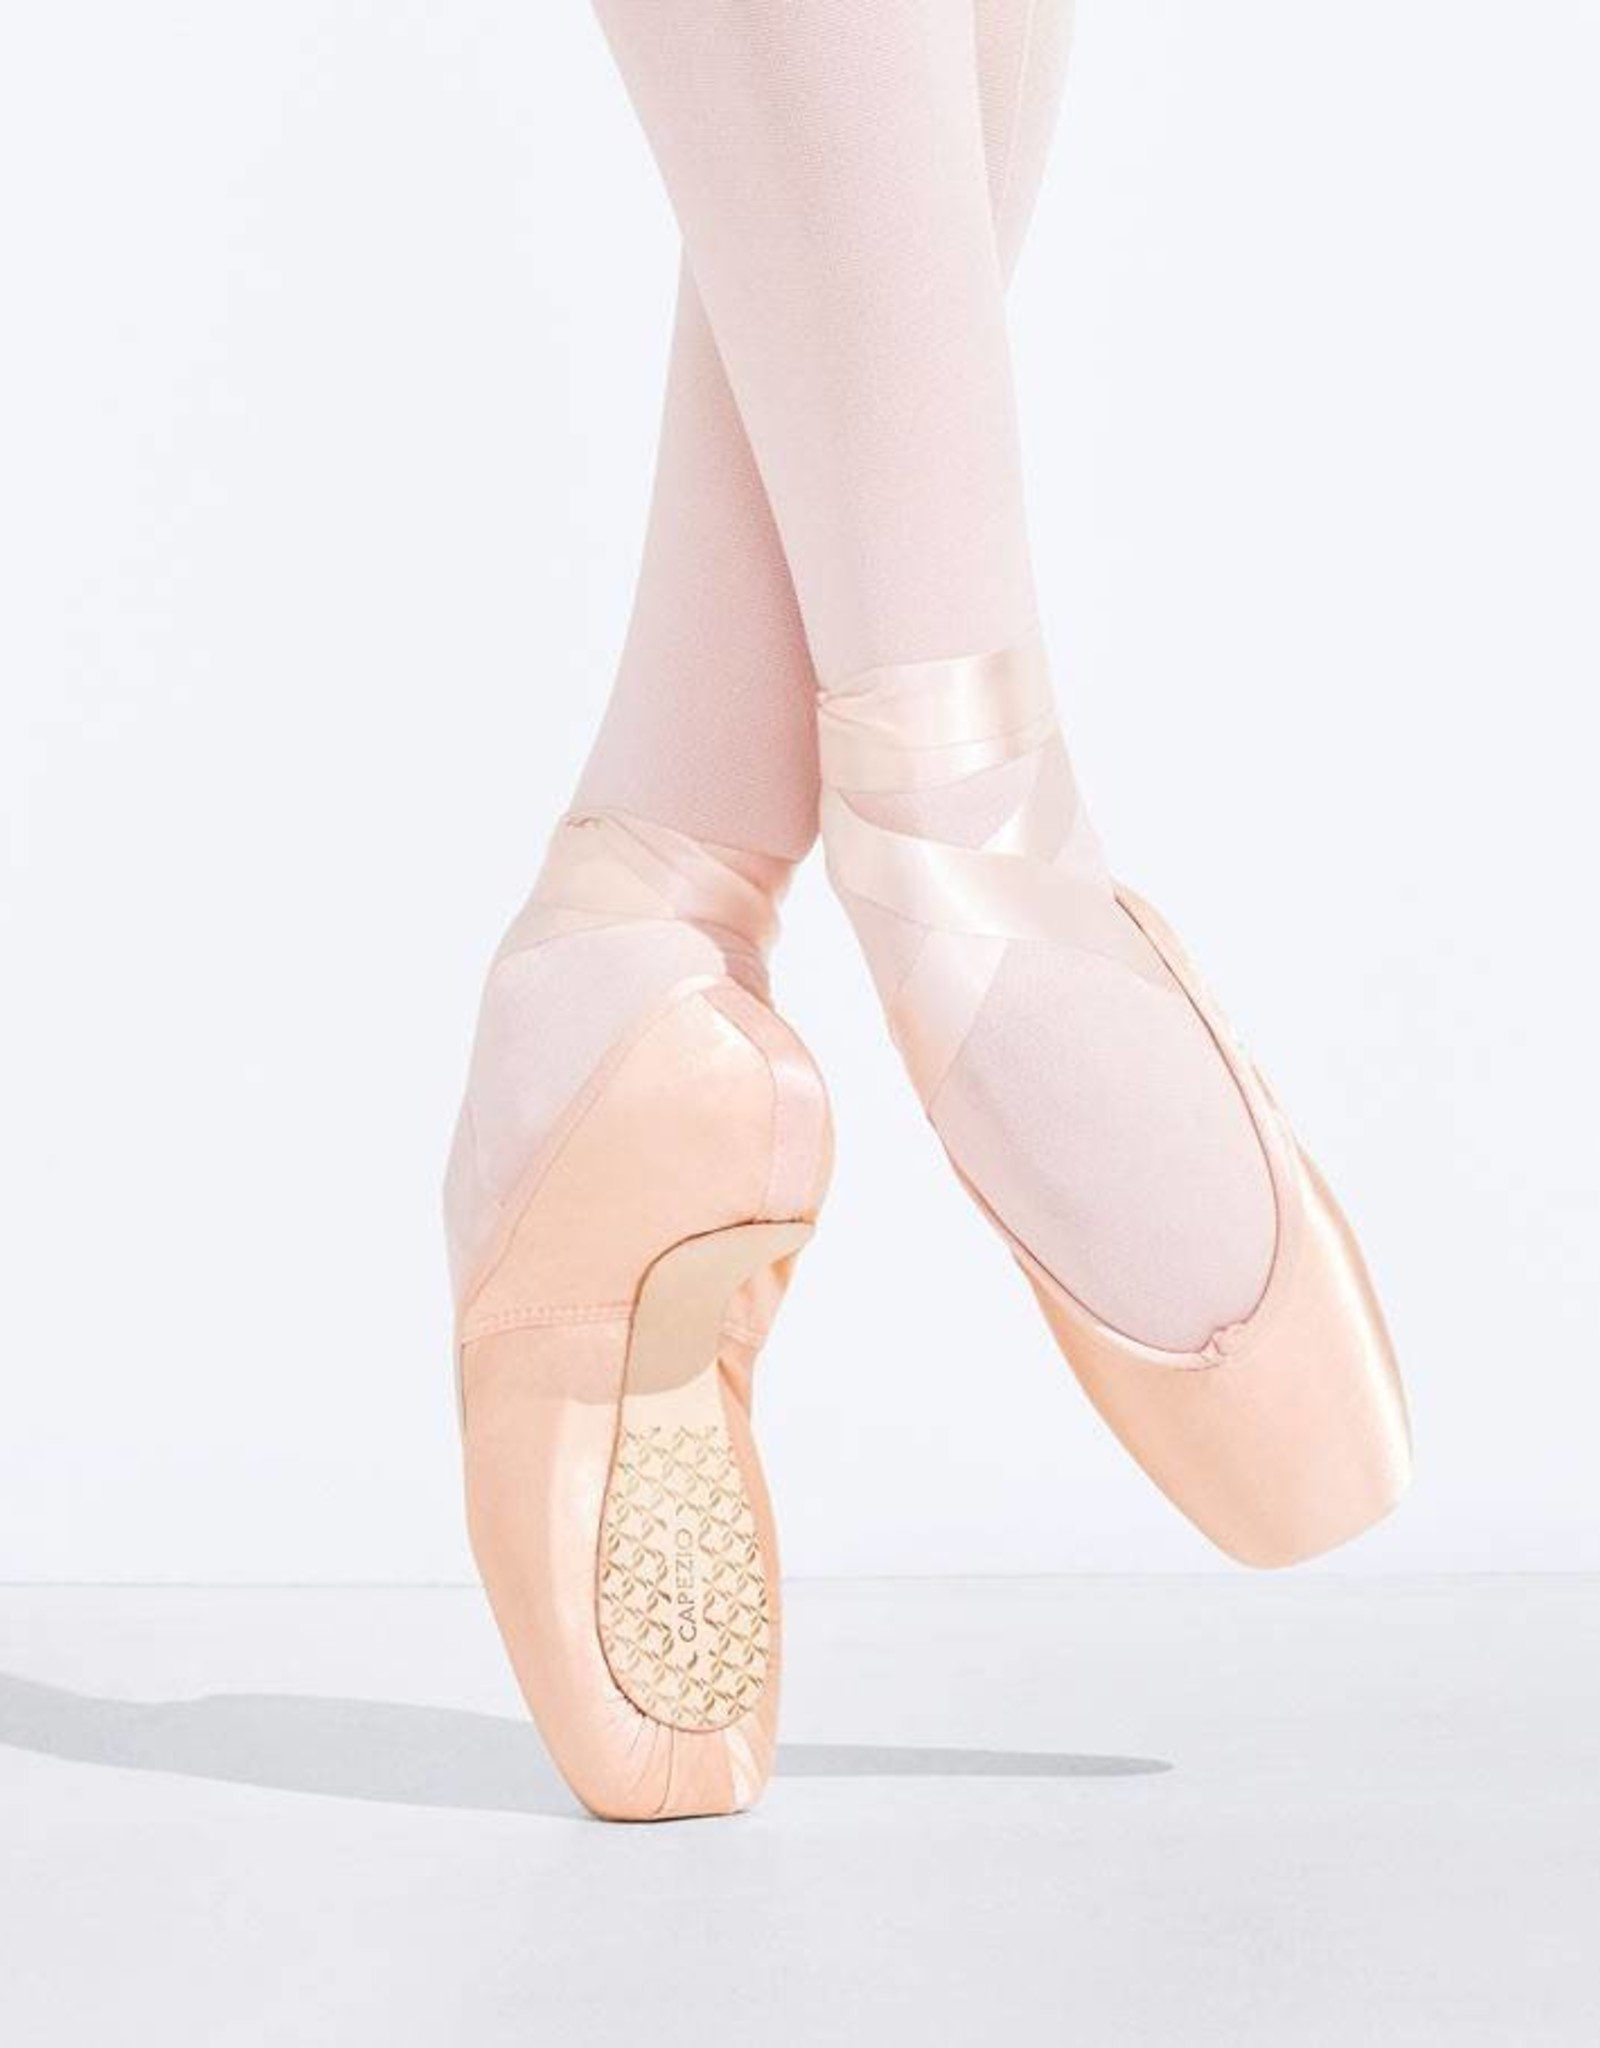 Capezio 176 Contempora Pointe Shoe